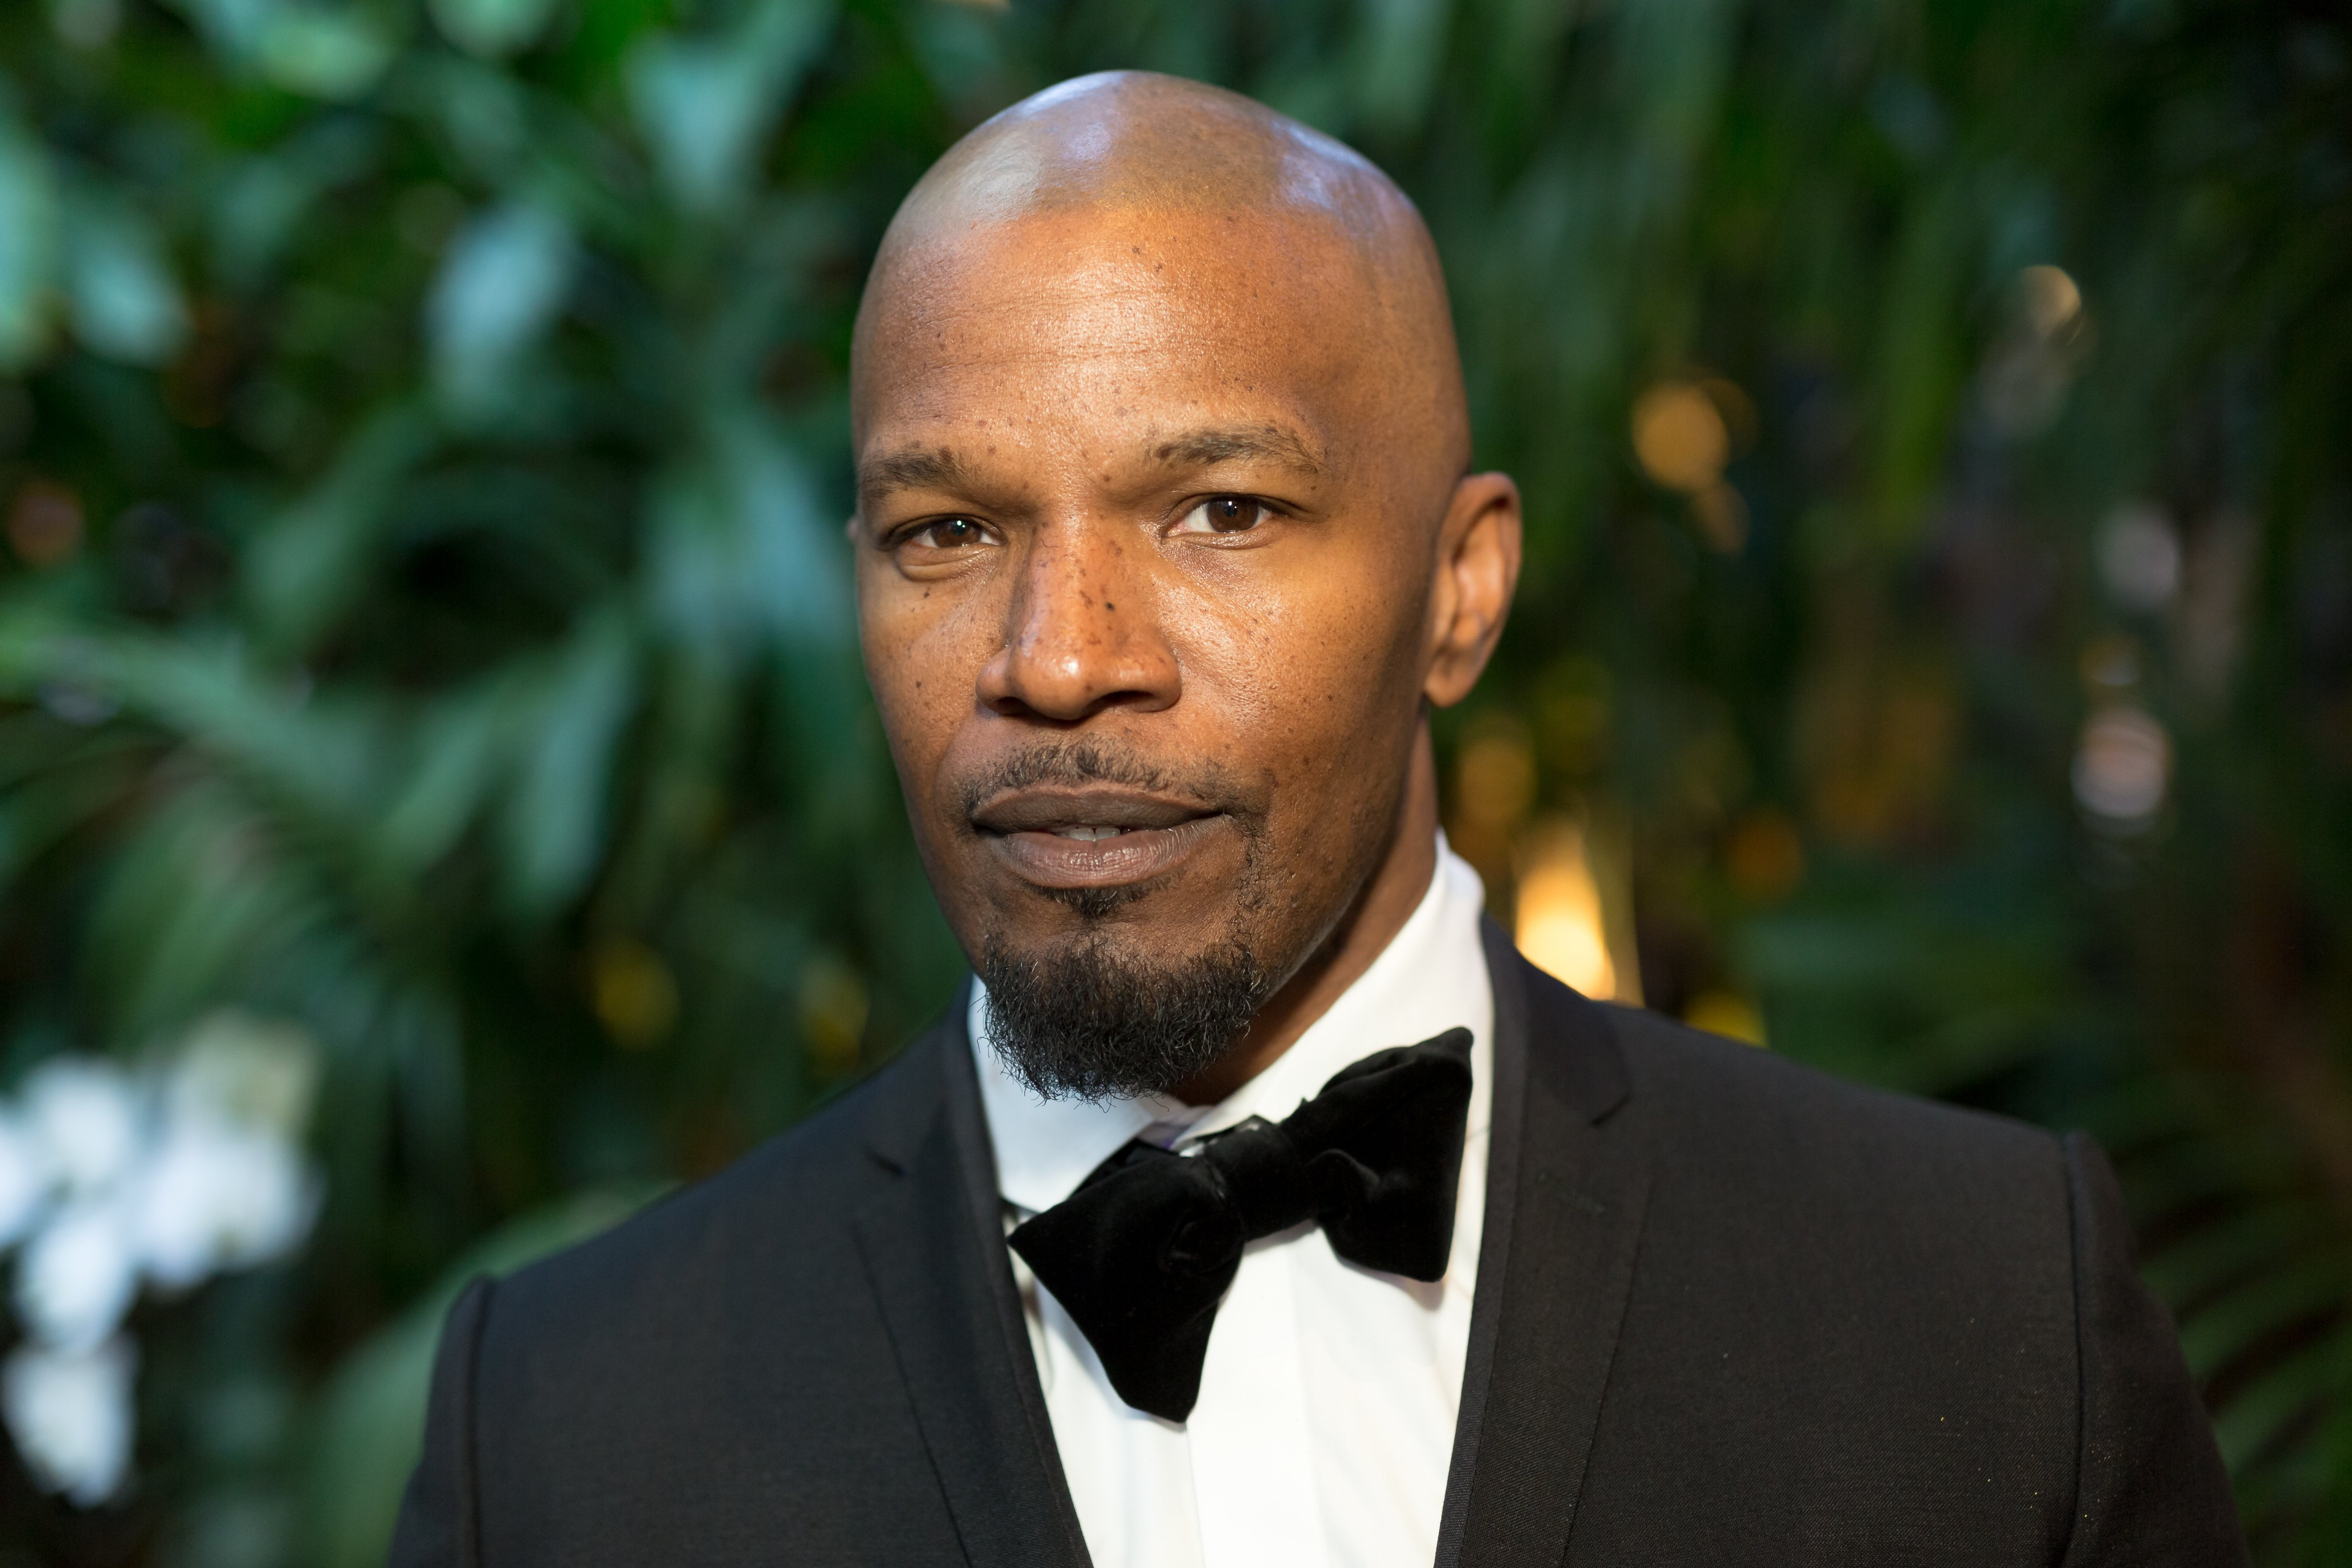 Jamie Foxx pictured at the Mercedez-Benz USA's Official Awards Viewing Party in Beverly Hills on March 4, 2018 in Los Angeles, California.   Source: Getty Images